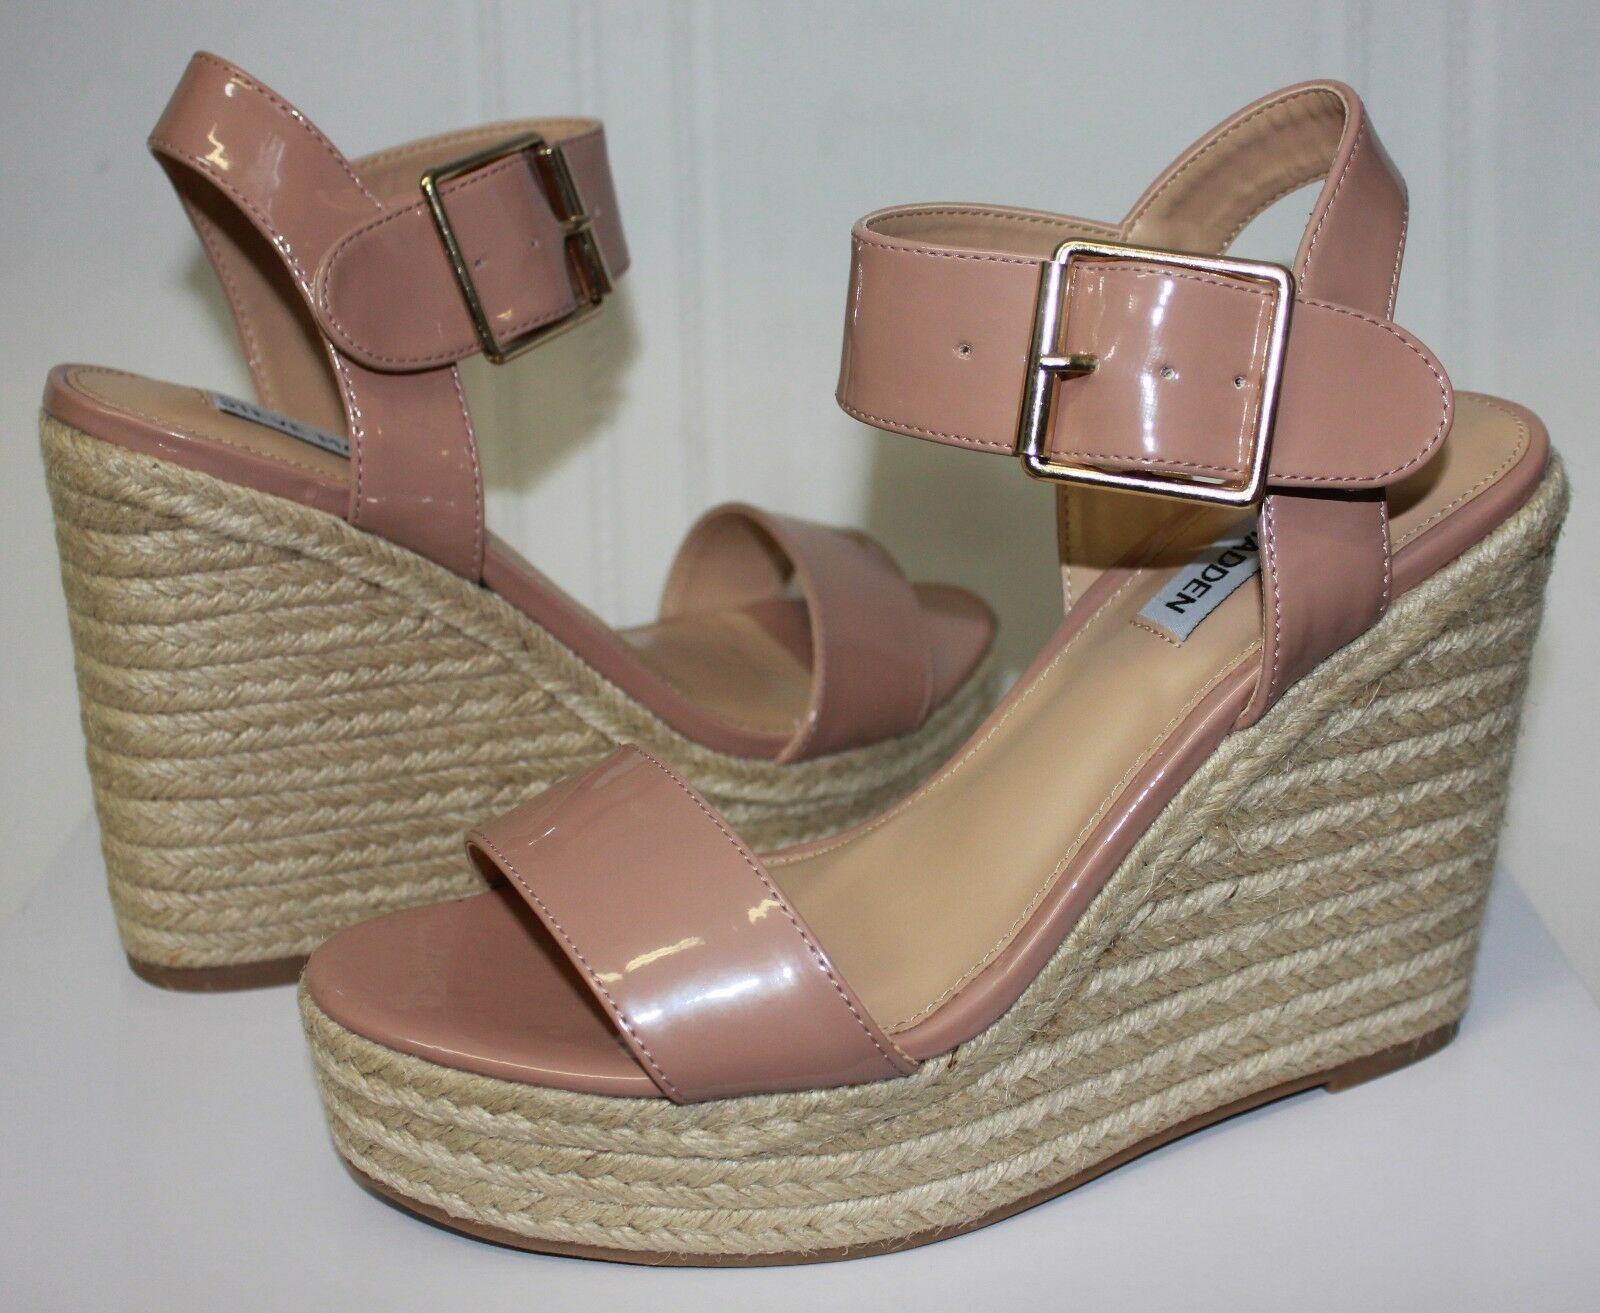 Steve Madden Santorini Espadrille Wedges Blush Patent NEU With Box